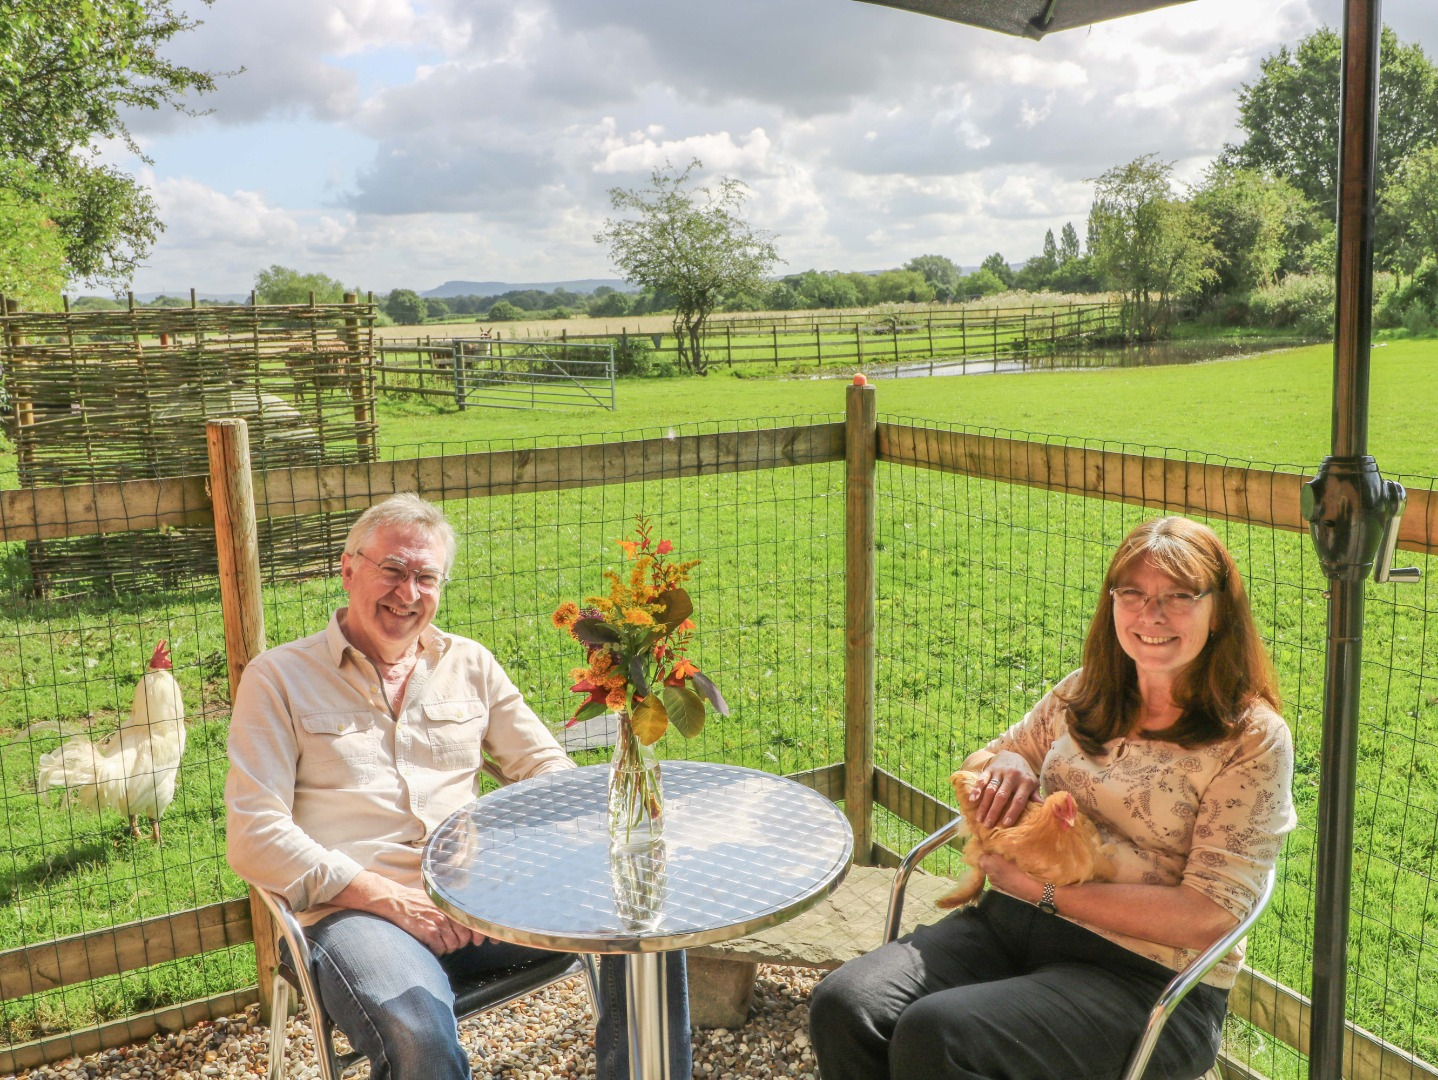 Cheshire Holiday Home named Best Farm Stay